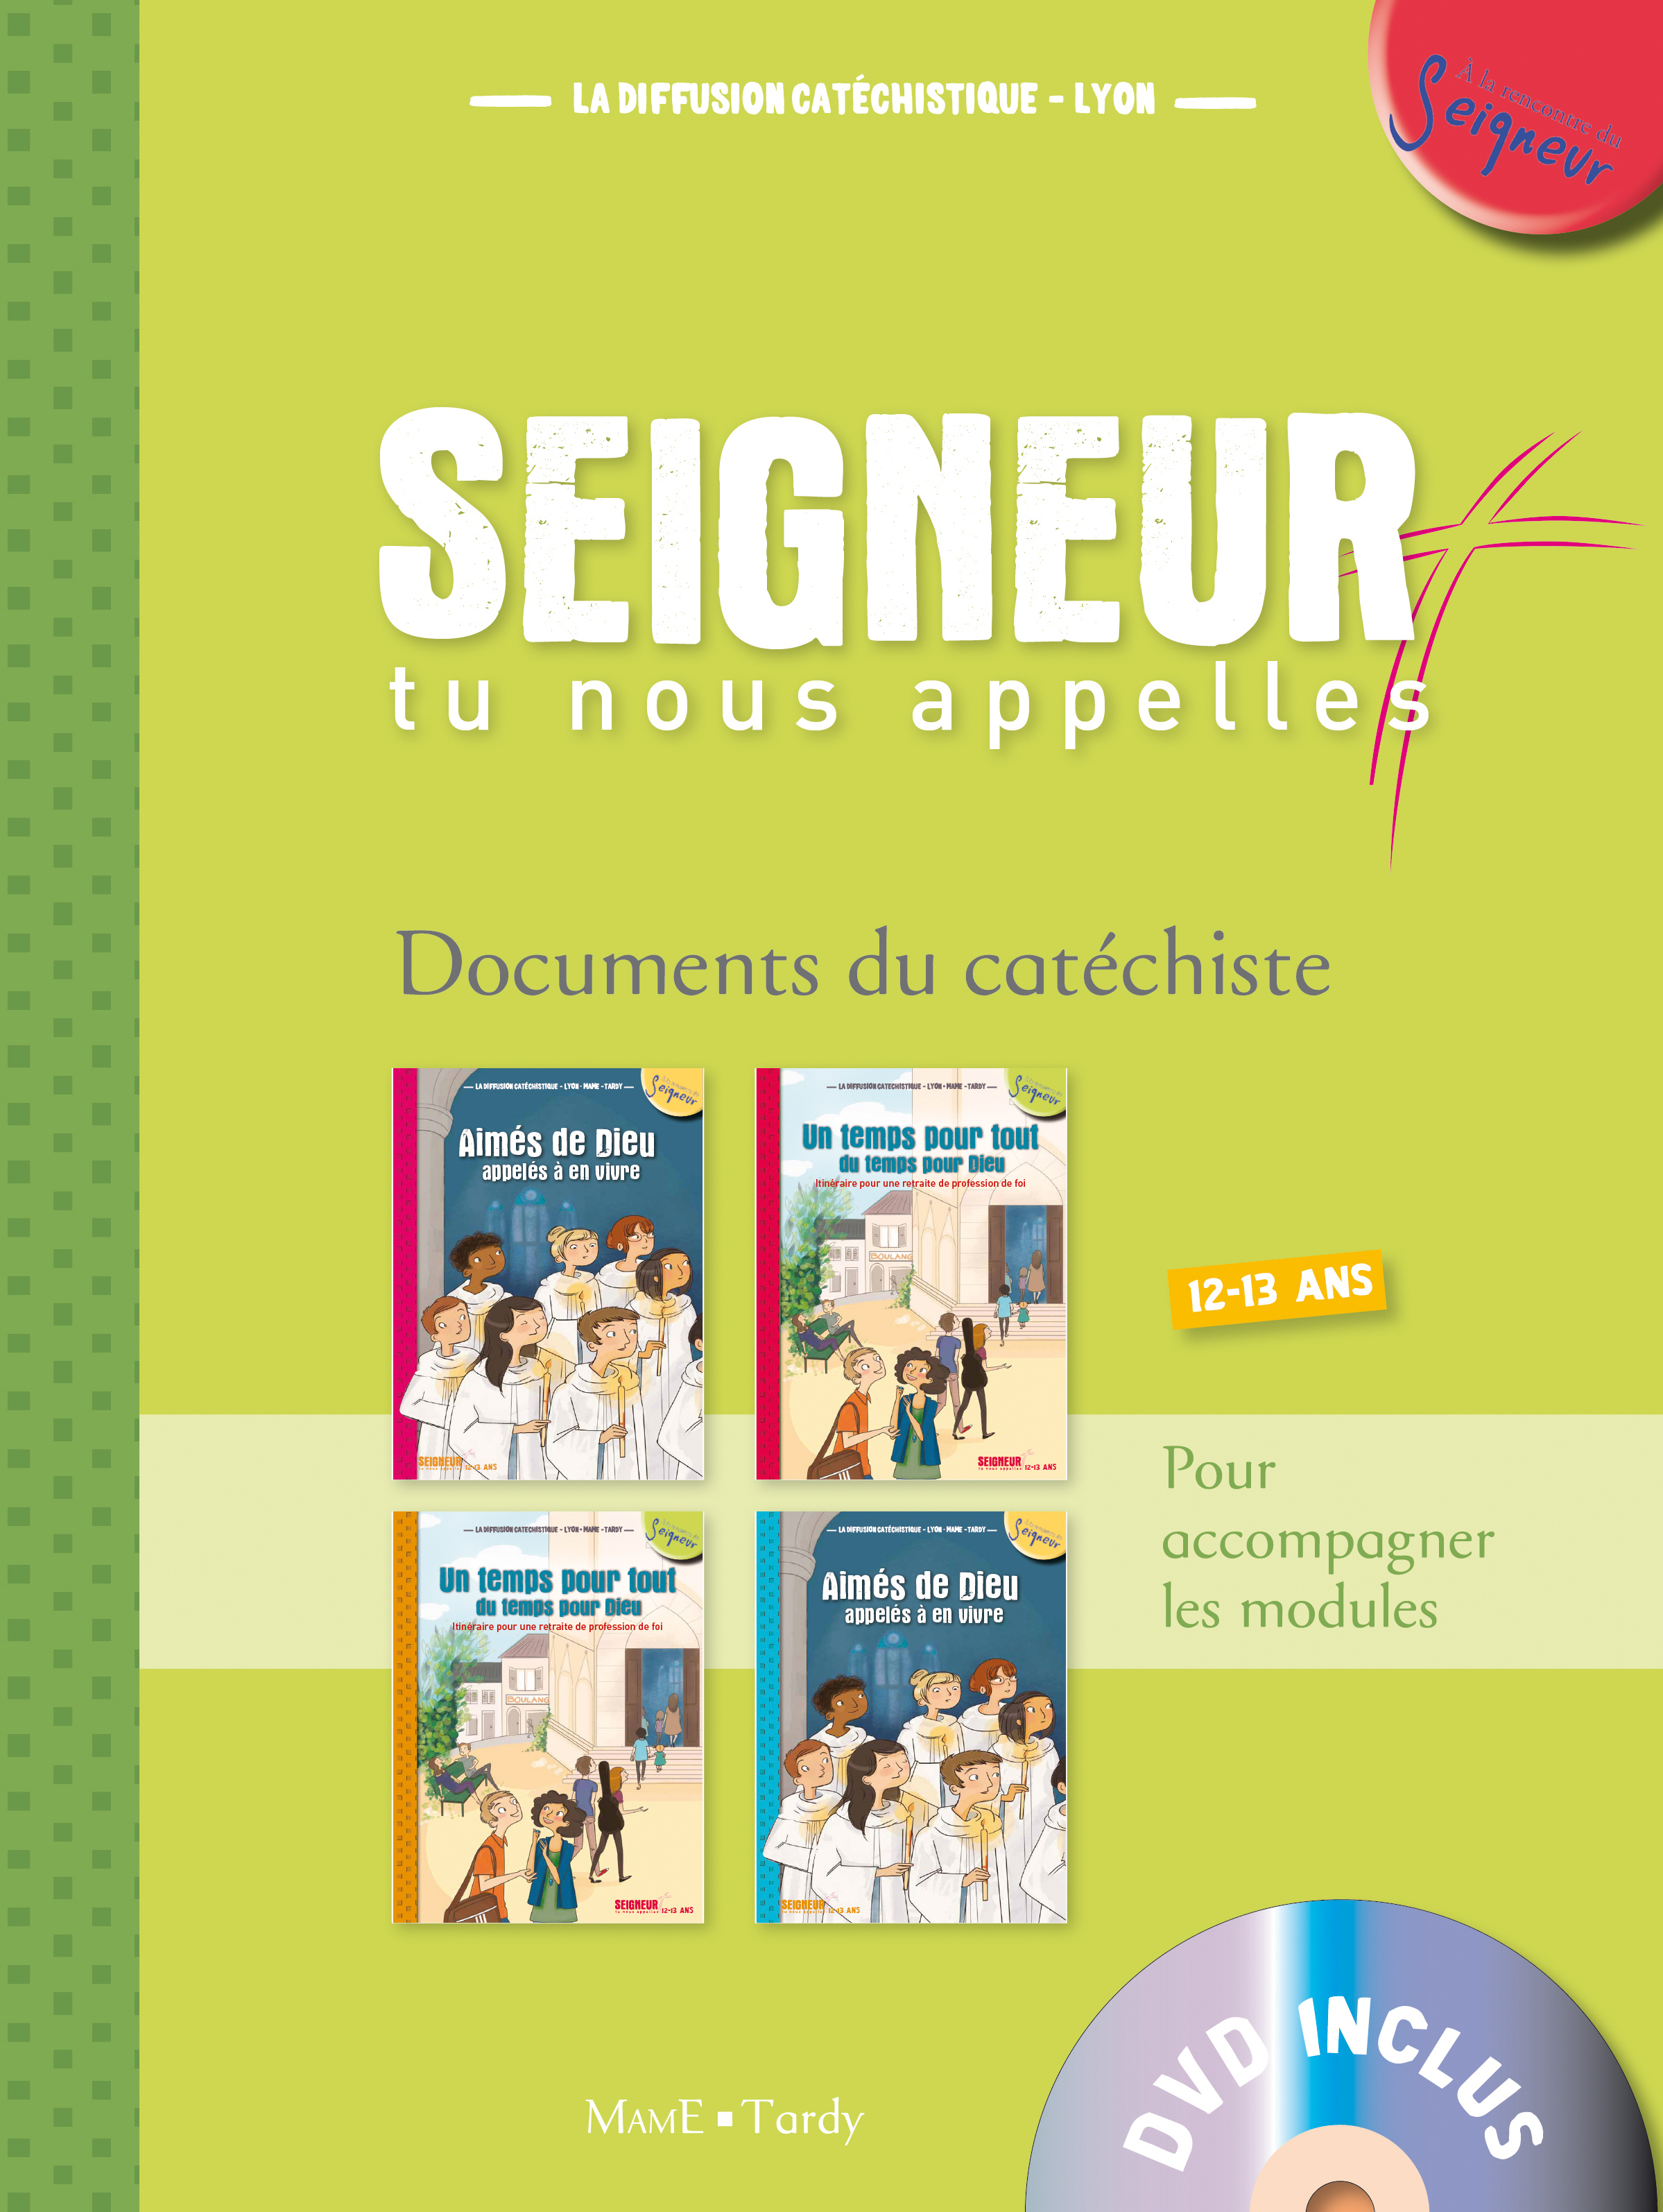 12-13 ANS - DOCUMENTS DE L'ANIMATEUR VERT + DVD - MODULES 1 A 4